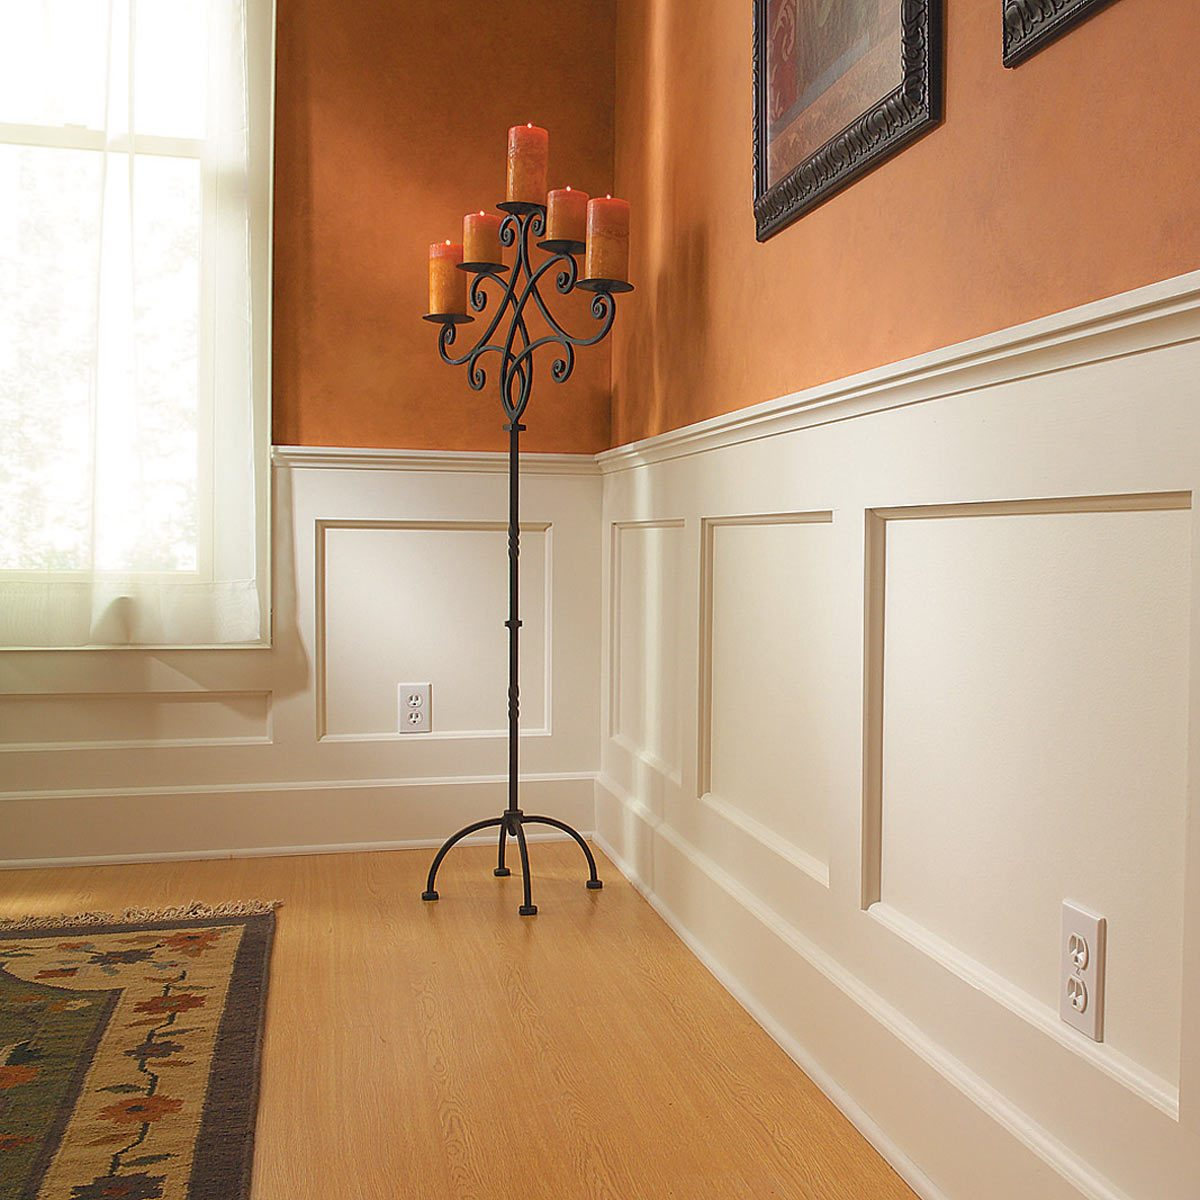 wood wainscoting panels, shaker wainscoting, full wall wainscoting, recessed panel wainscoting